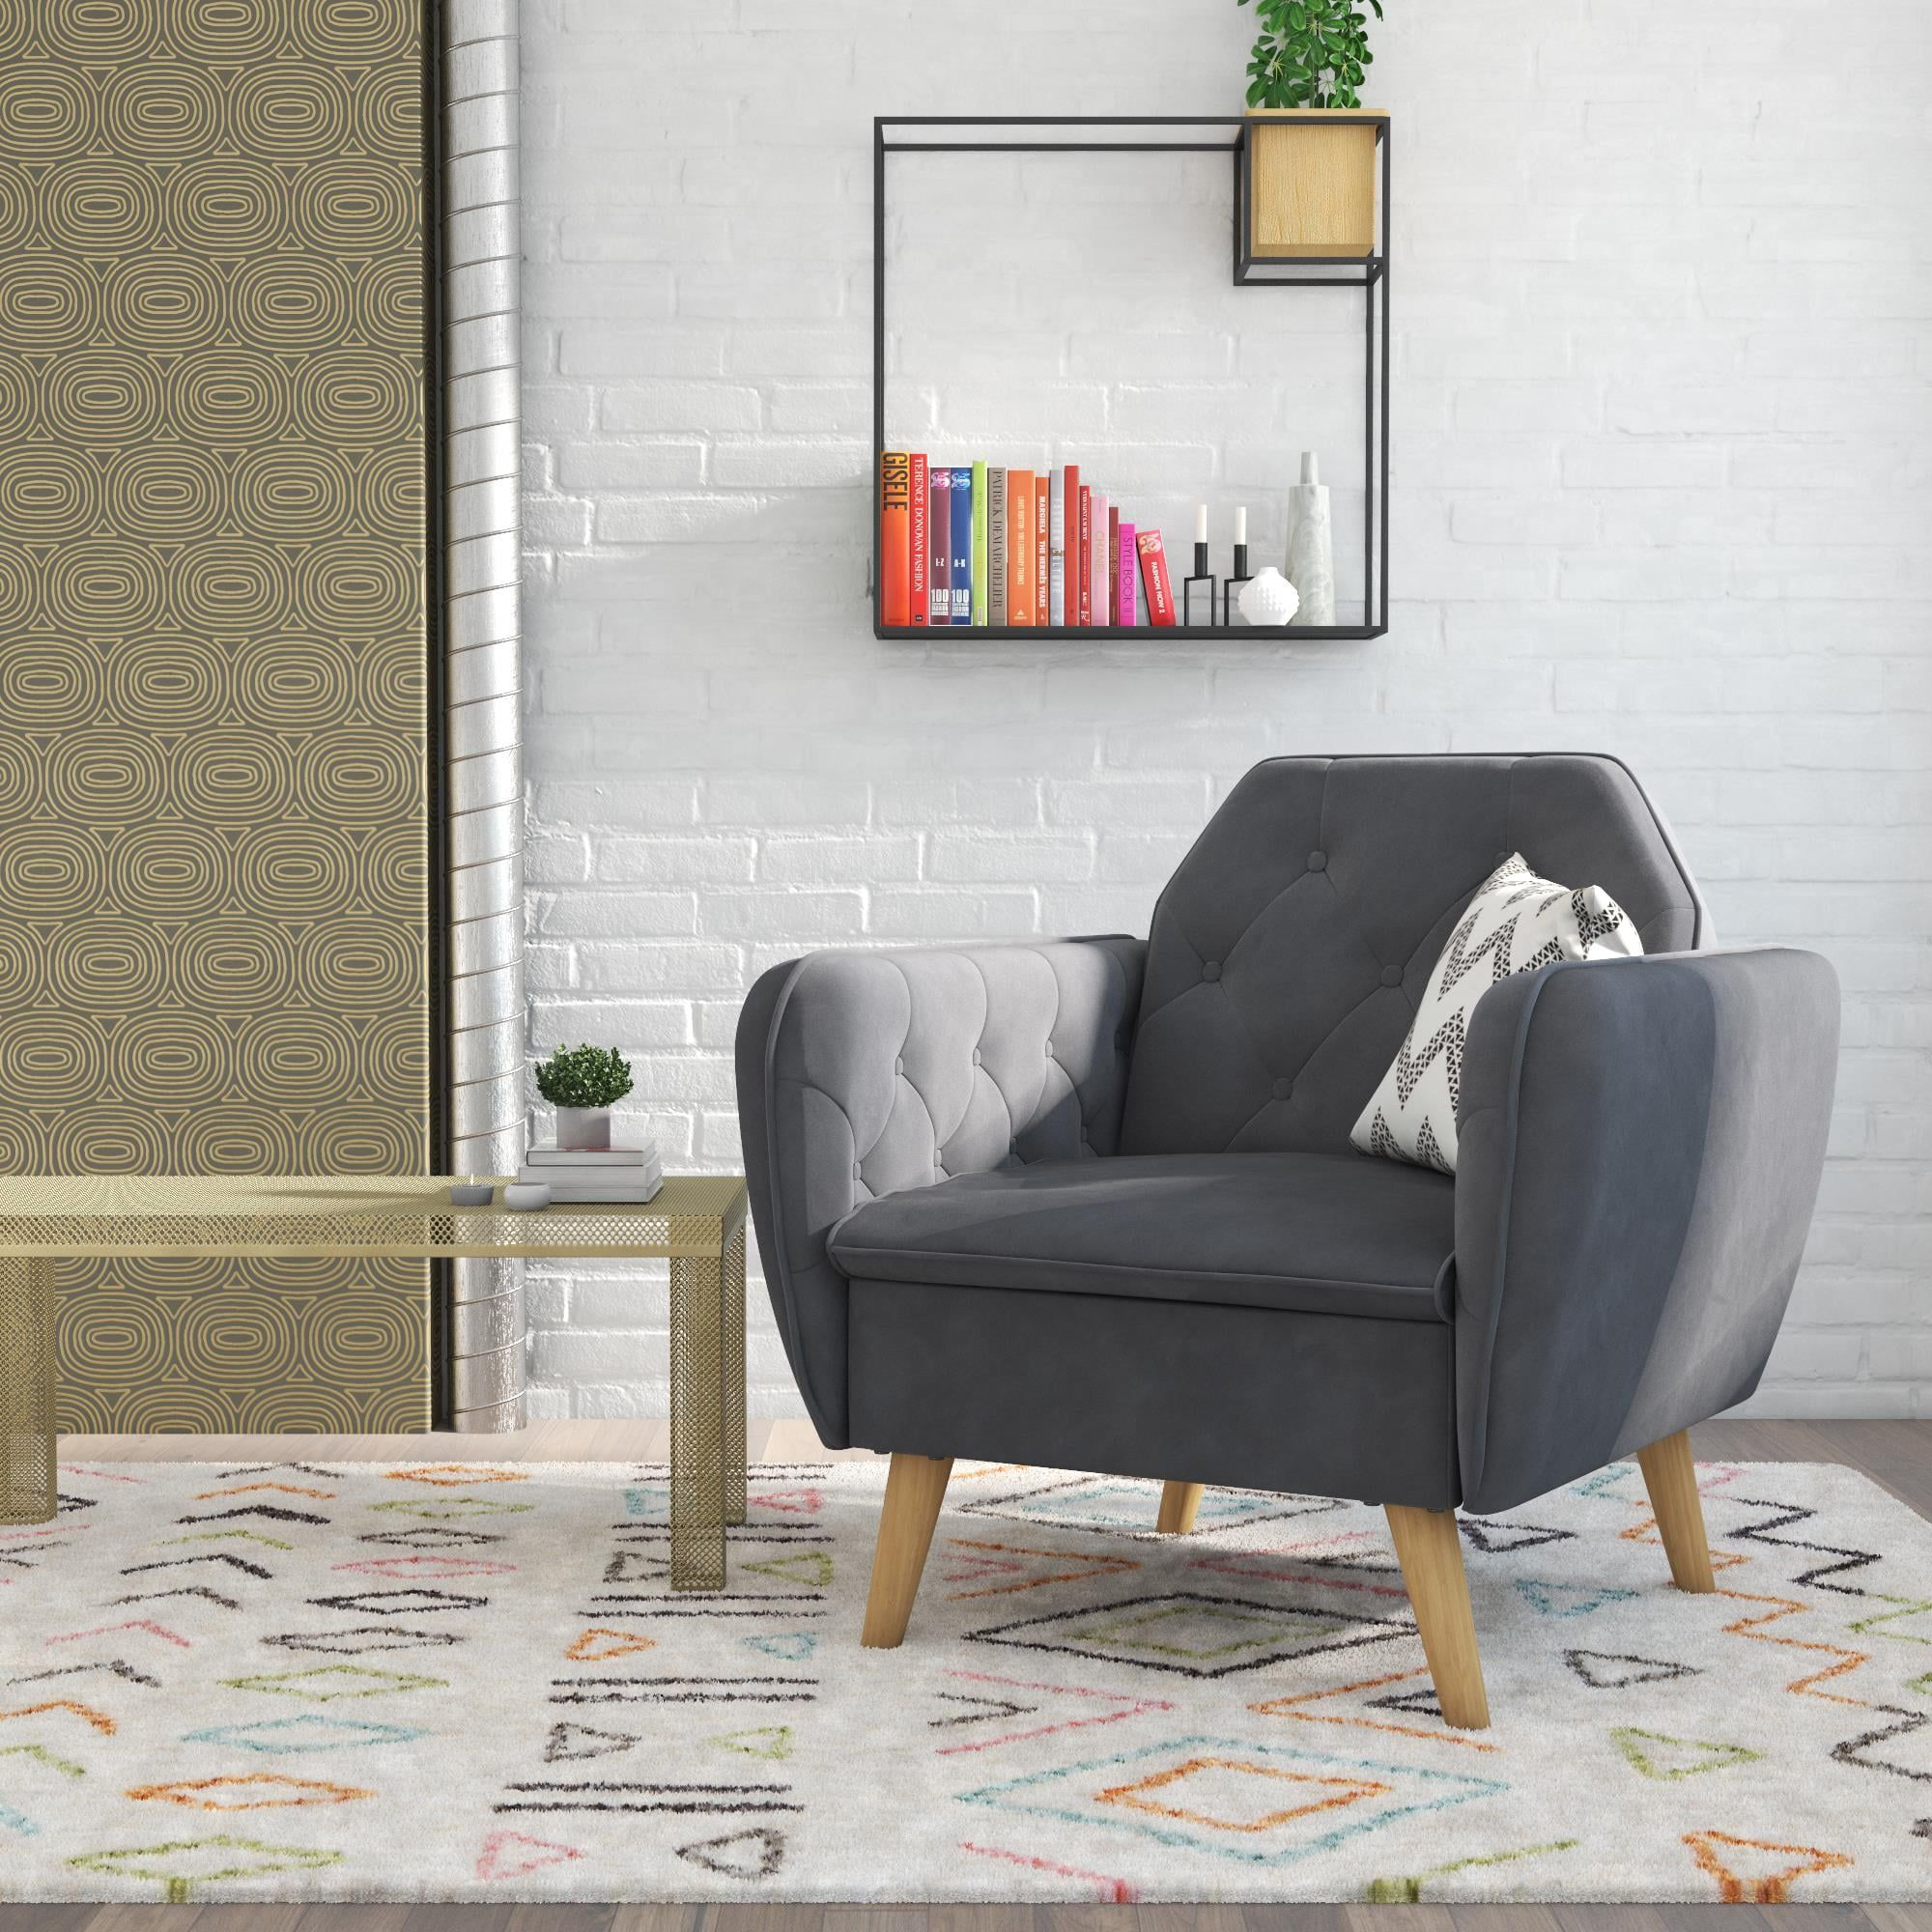 There Are So Many Cute Novogratz Couches And Chairs Available At Walmart Good Luck Picking One Accent Chairs For Living Room Living Room Furniture Accent Chairs Cute chairs for living room